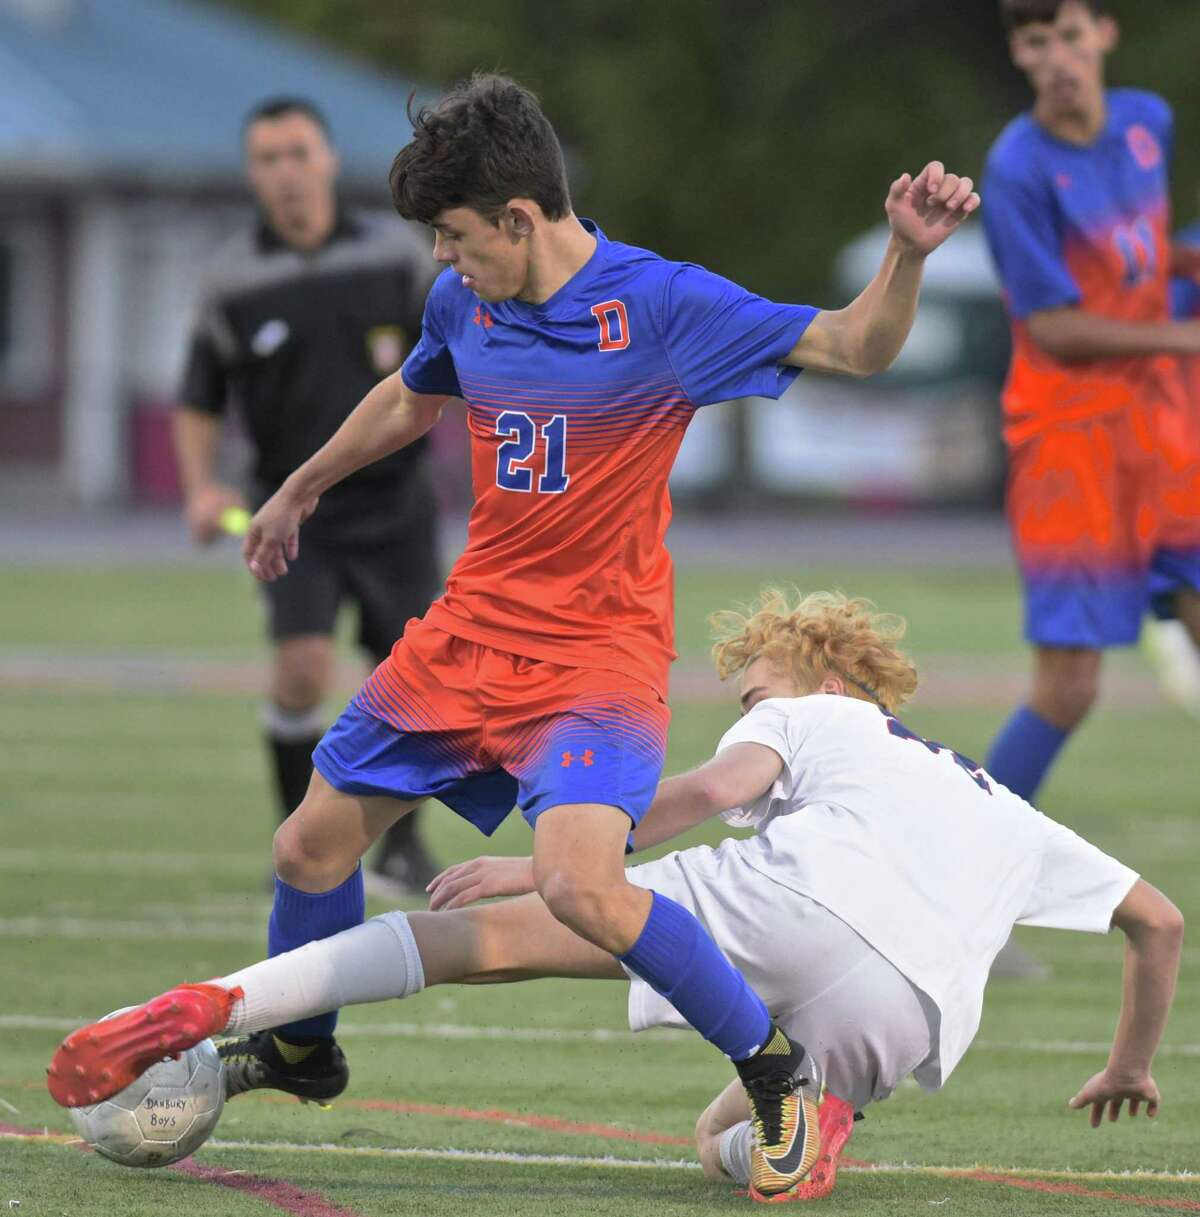 Danbury's Lucas Oliveira (21) and McMahon's Lucas Balderrama (22) battle for the ball in the FCIAC boys Soccer game between Brien McMahon and Danbury high schools, Friday afternoon, October 26, 2018, at Danbury High School, Danbury, Conn.